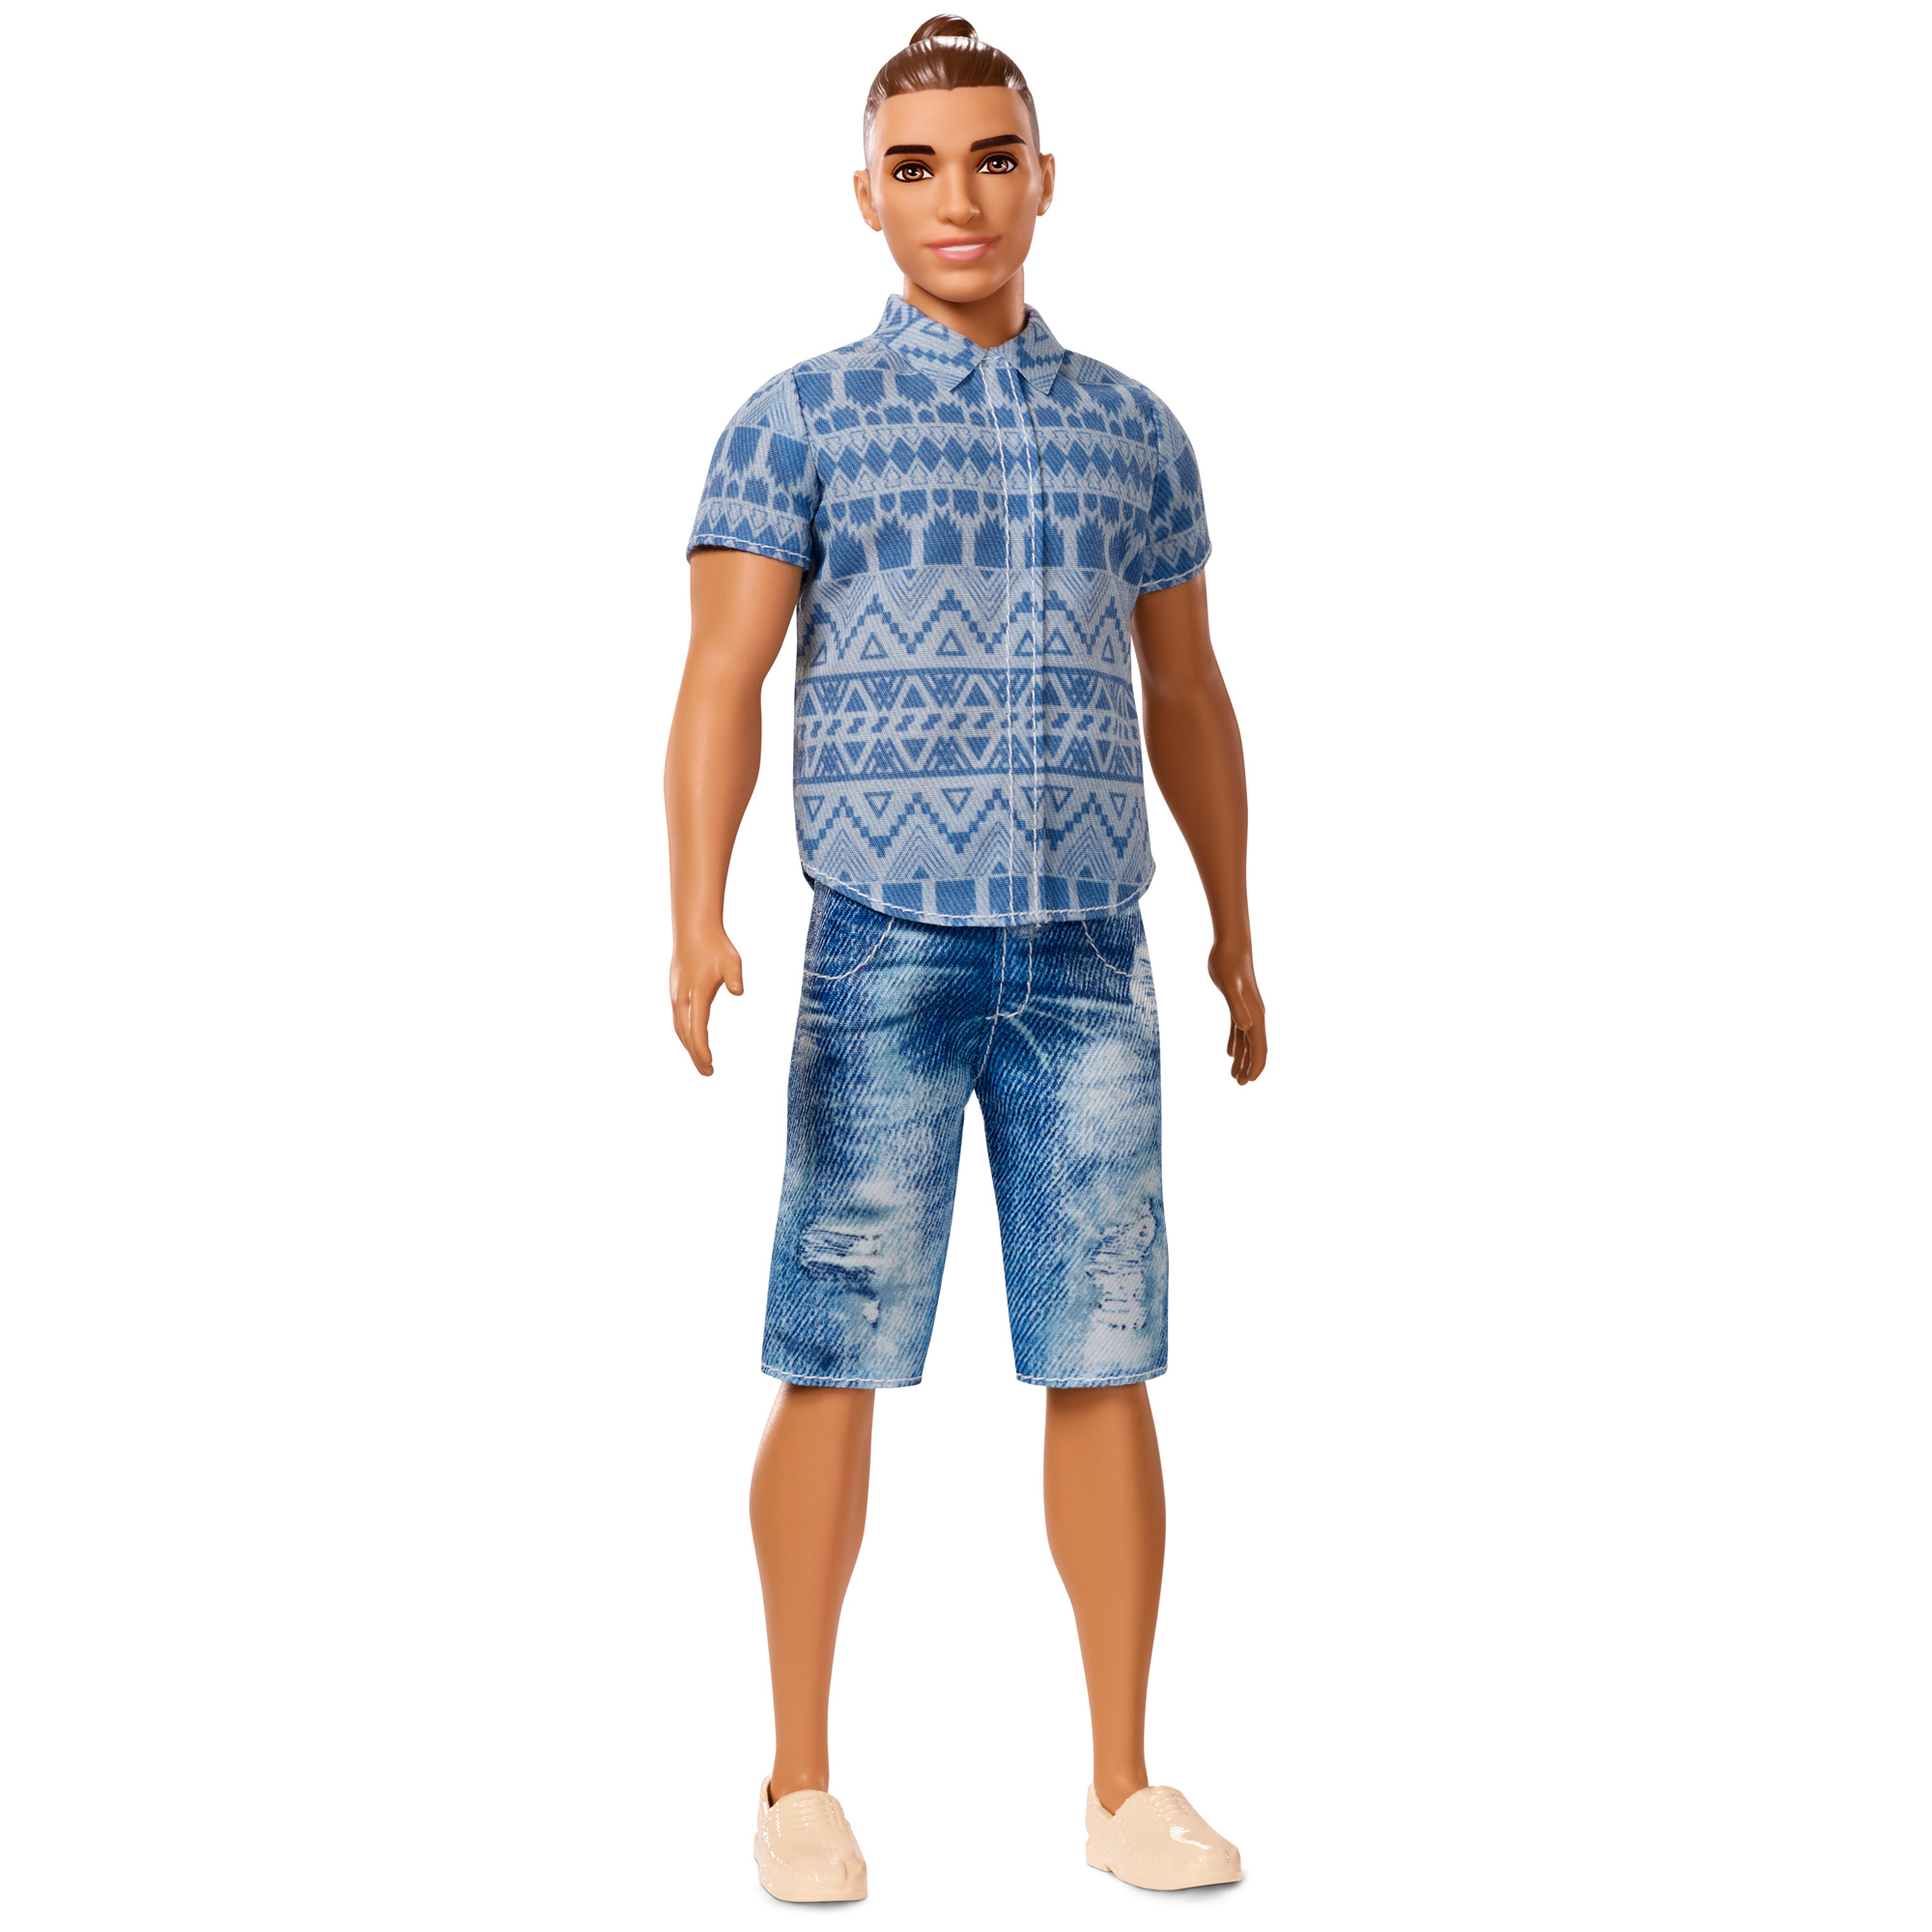 Barbie Ken Fashionistas Broad Doll 13 Distressed Denim by MATTEL INC.